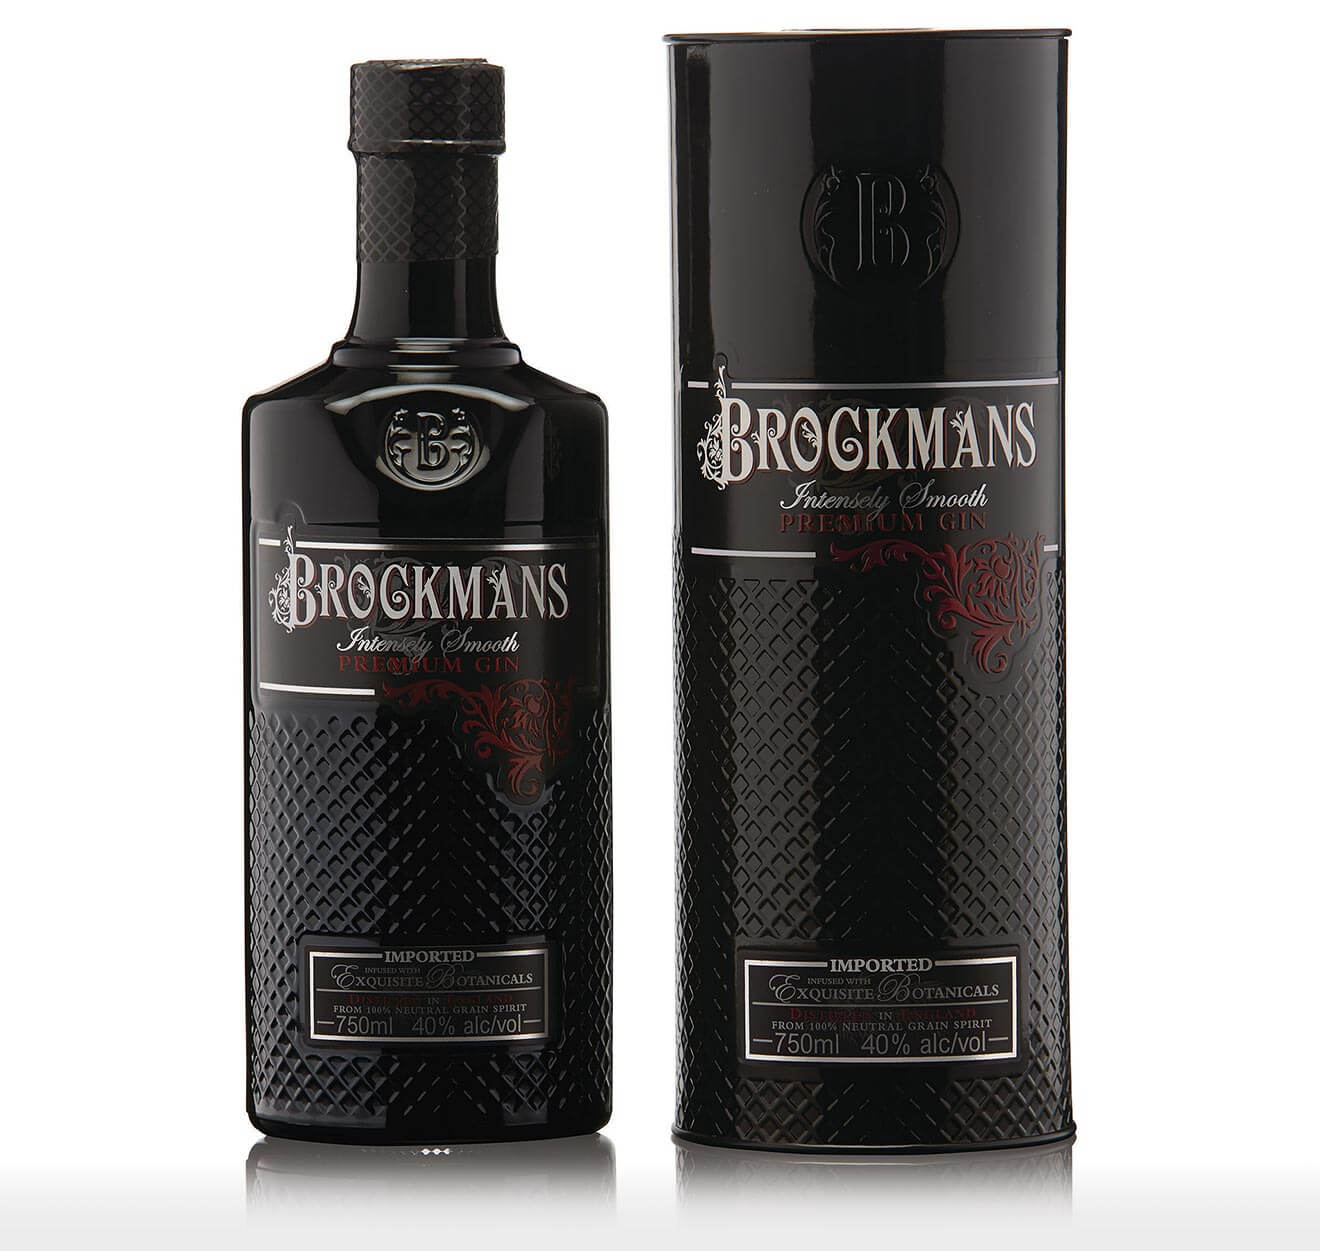 Brockmans Gin Holiday Gift Pack, bottle and package on white